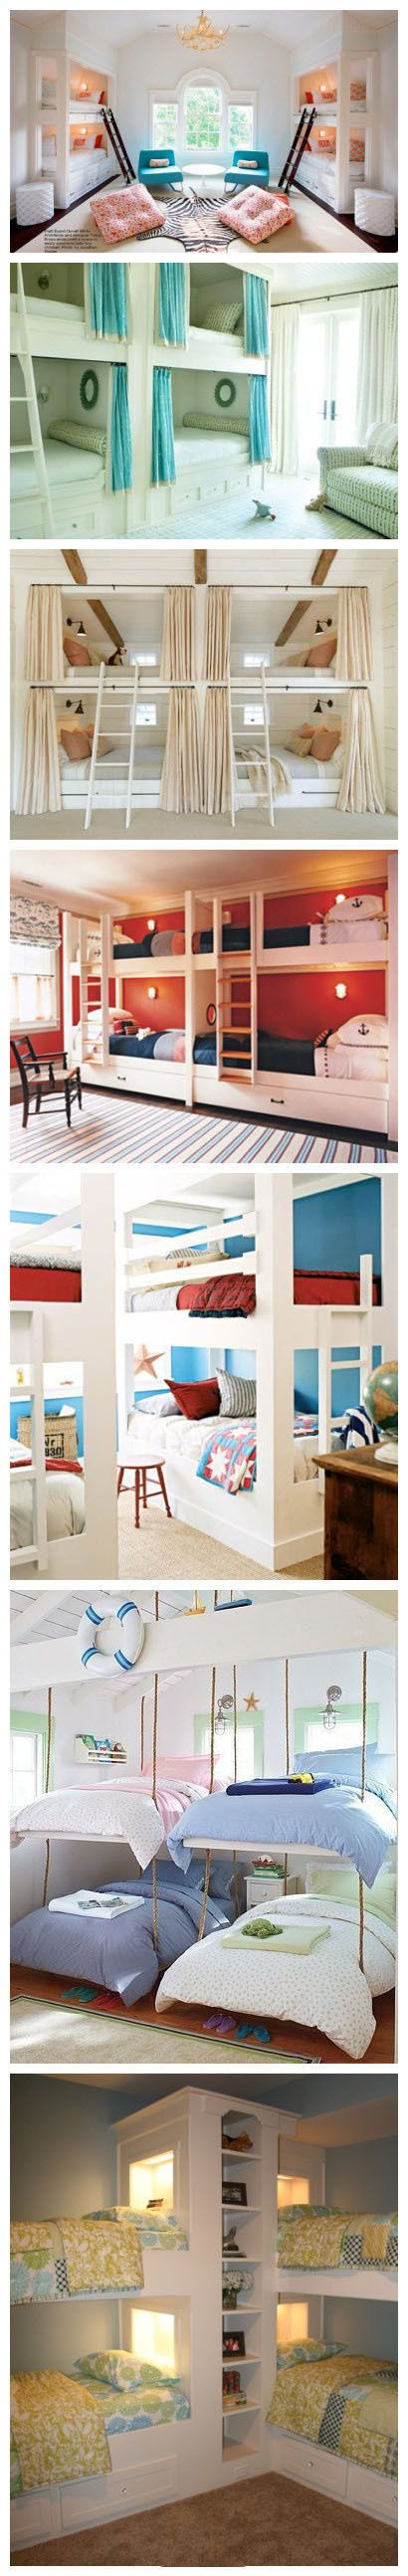 Ideas for bunk Bed Rooms